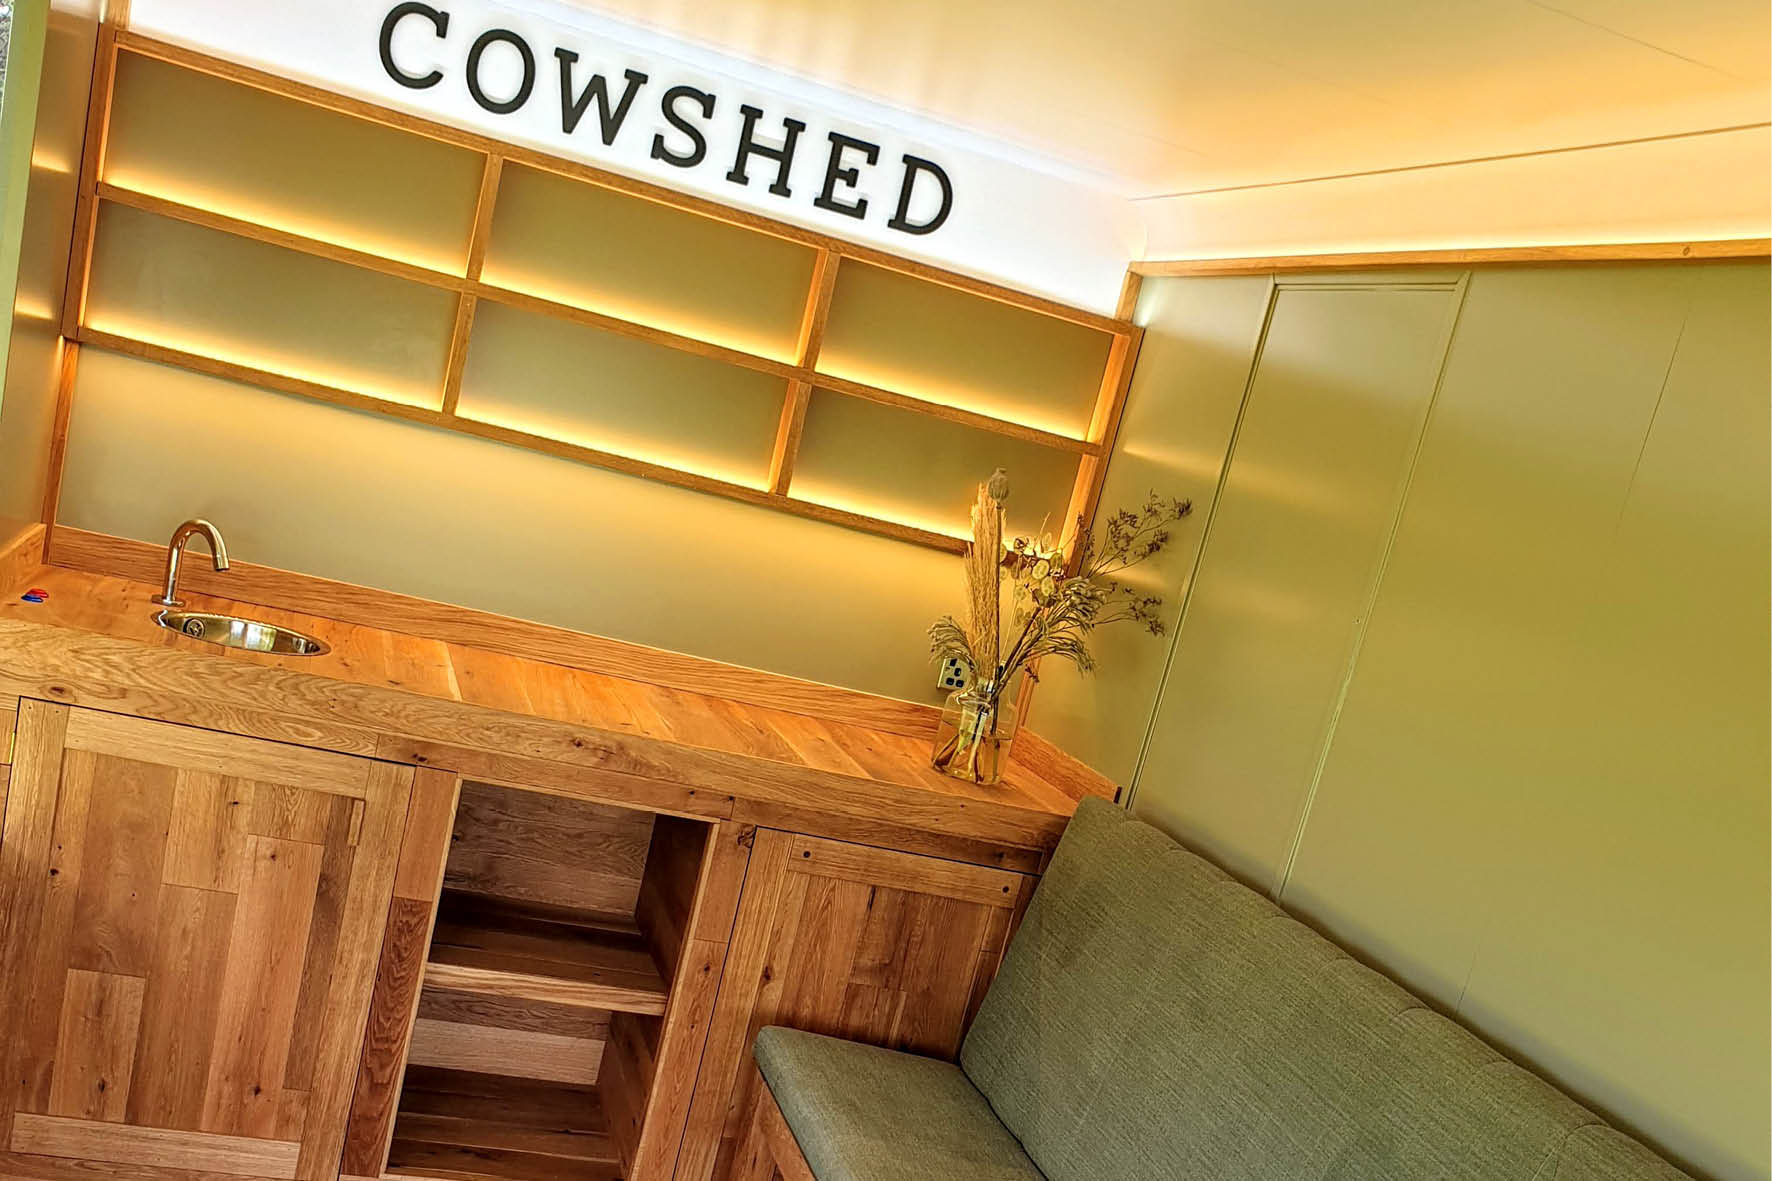 bus_business_2019_cowshed_5.jpg